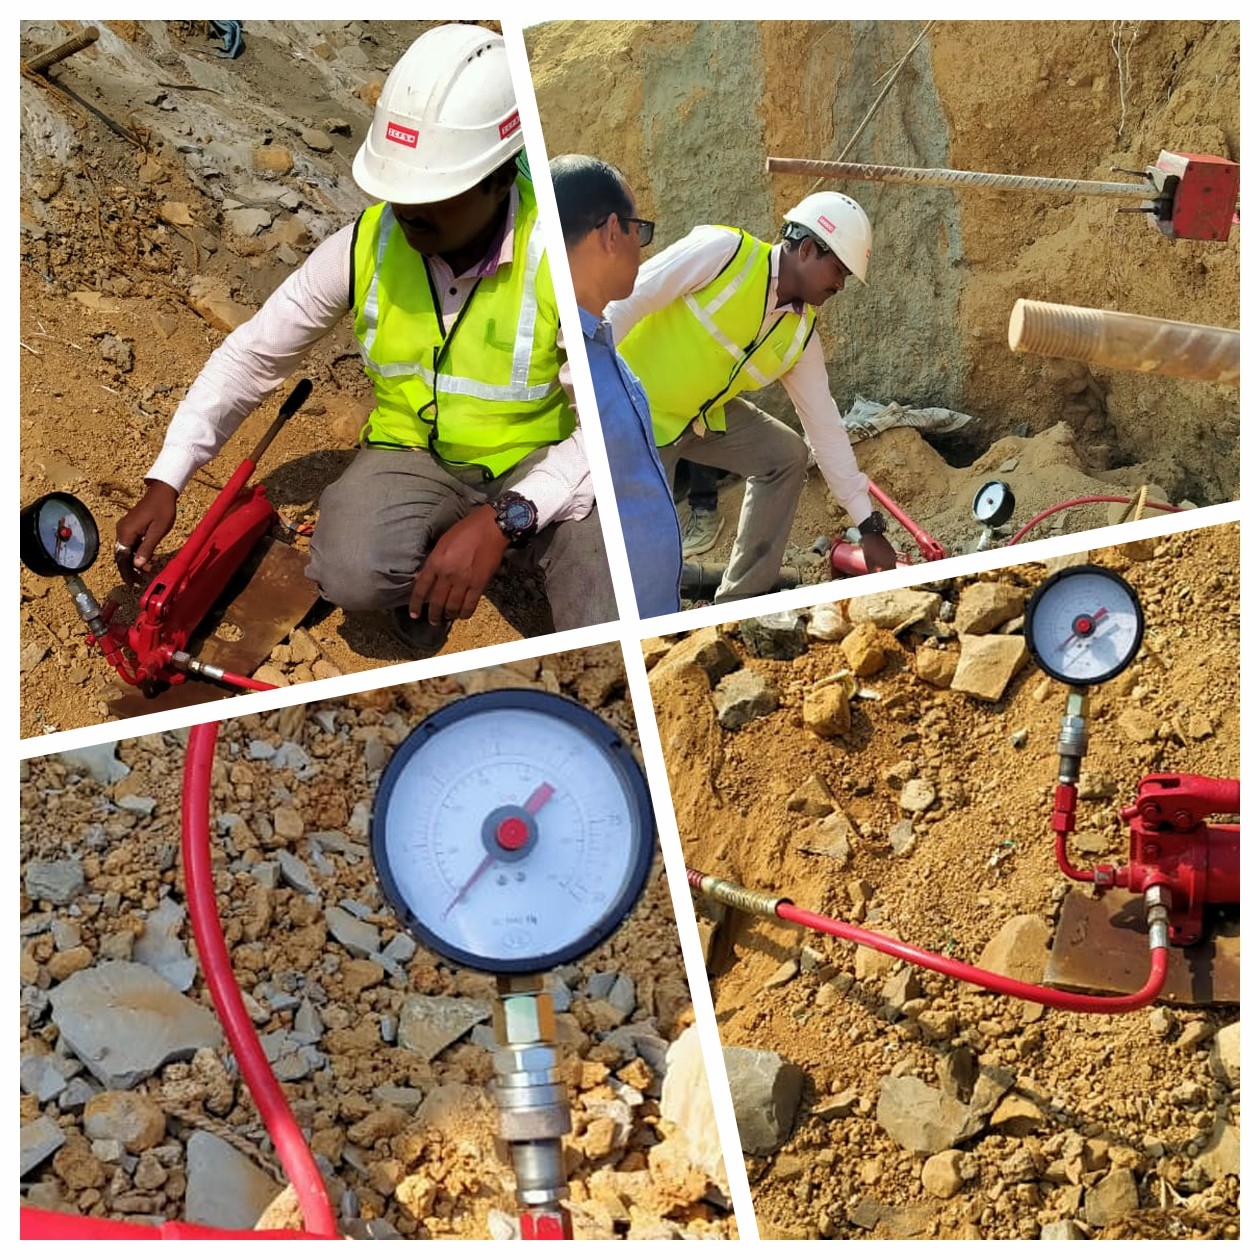 PULL OUT TEST AT SITE